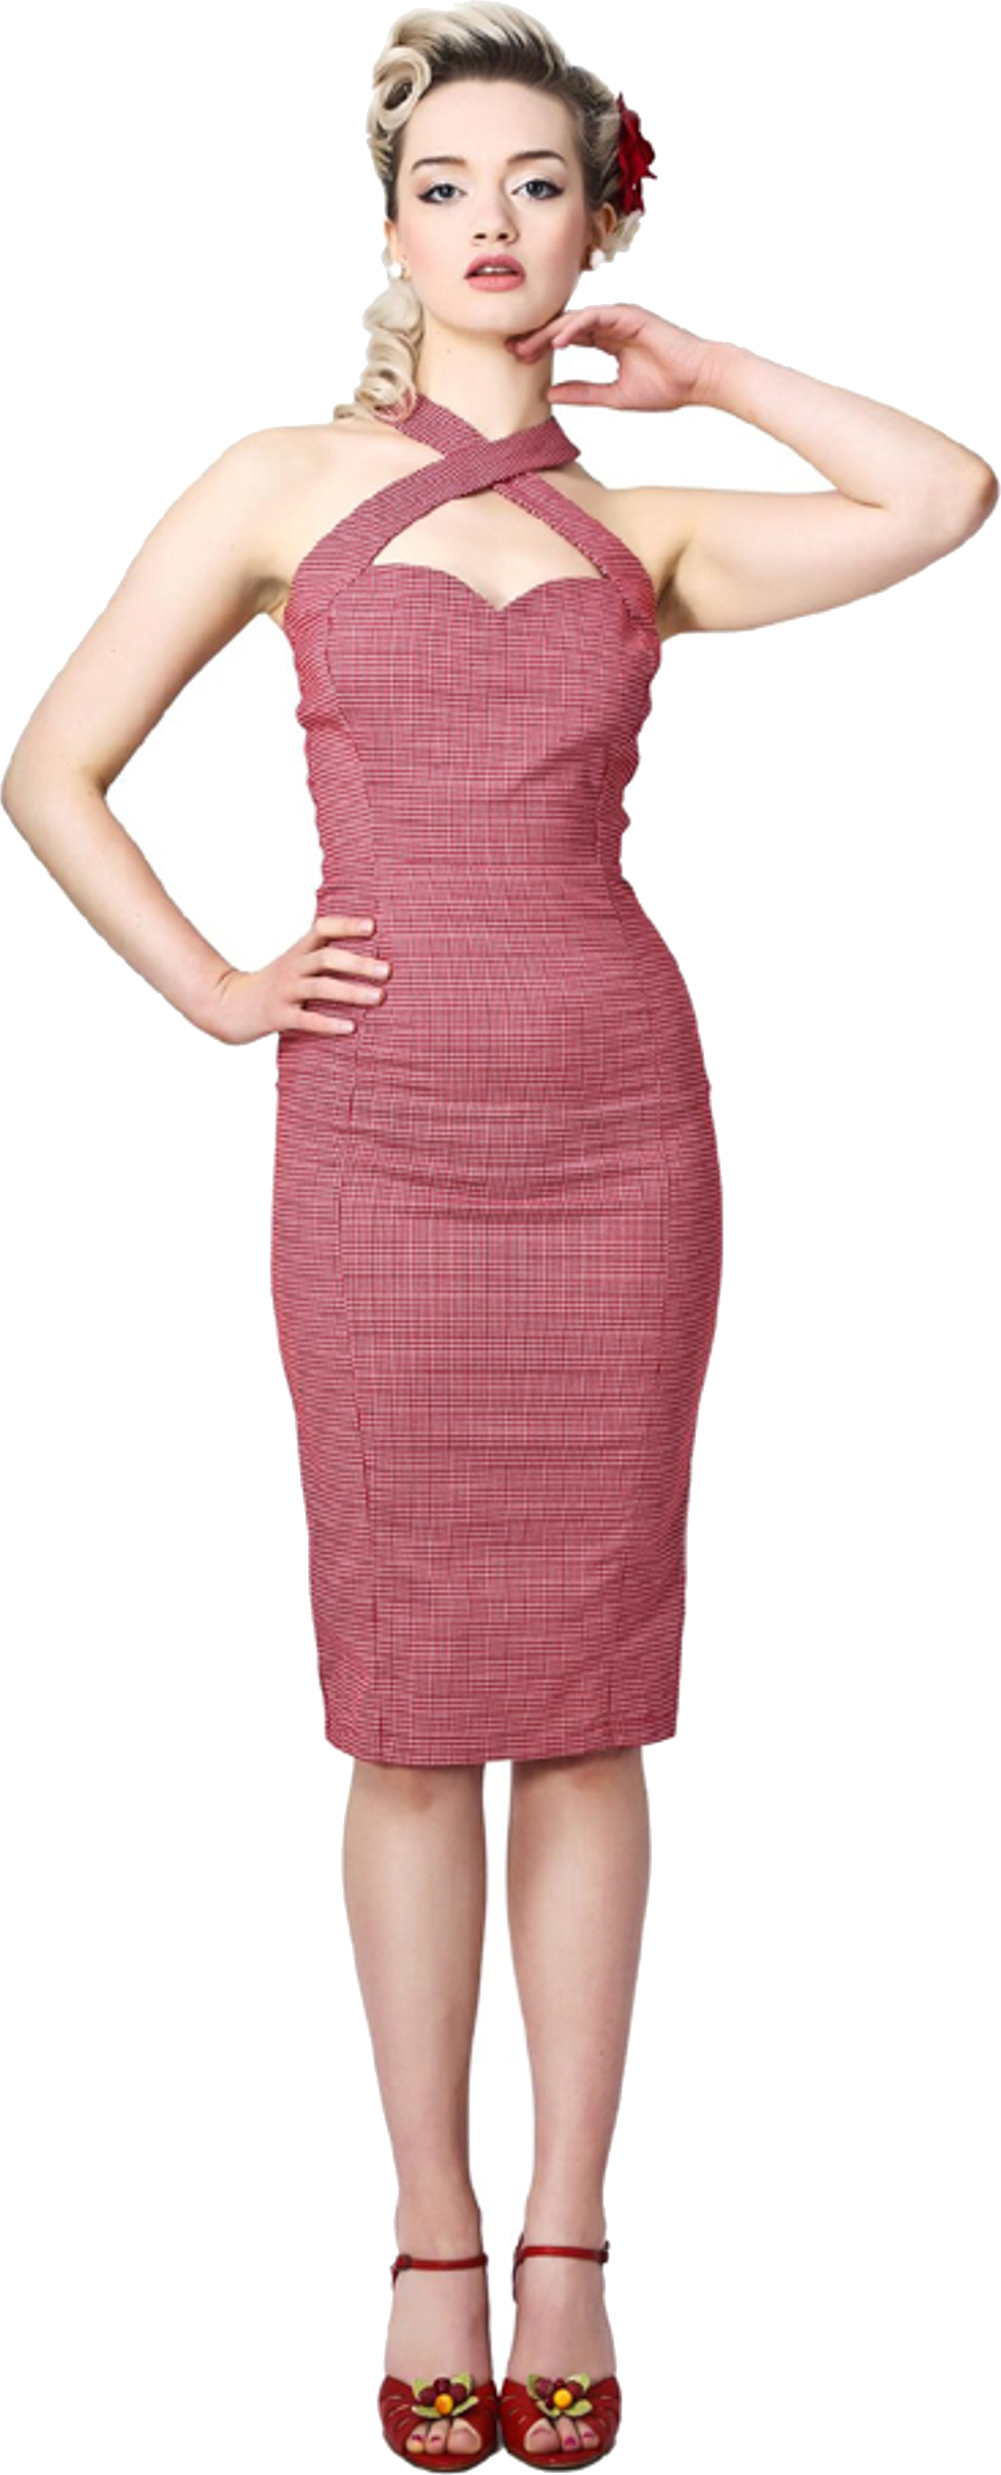 ce4d6789f149 Collectif PENNY Gingham 50s Vintage PENCIL DRESS / Kleid - Rot ...